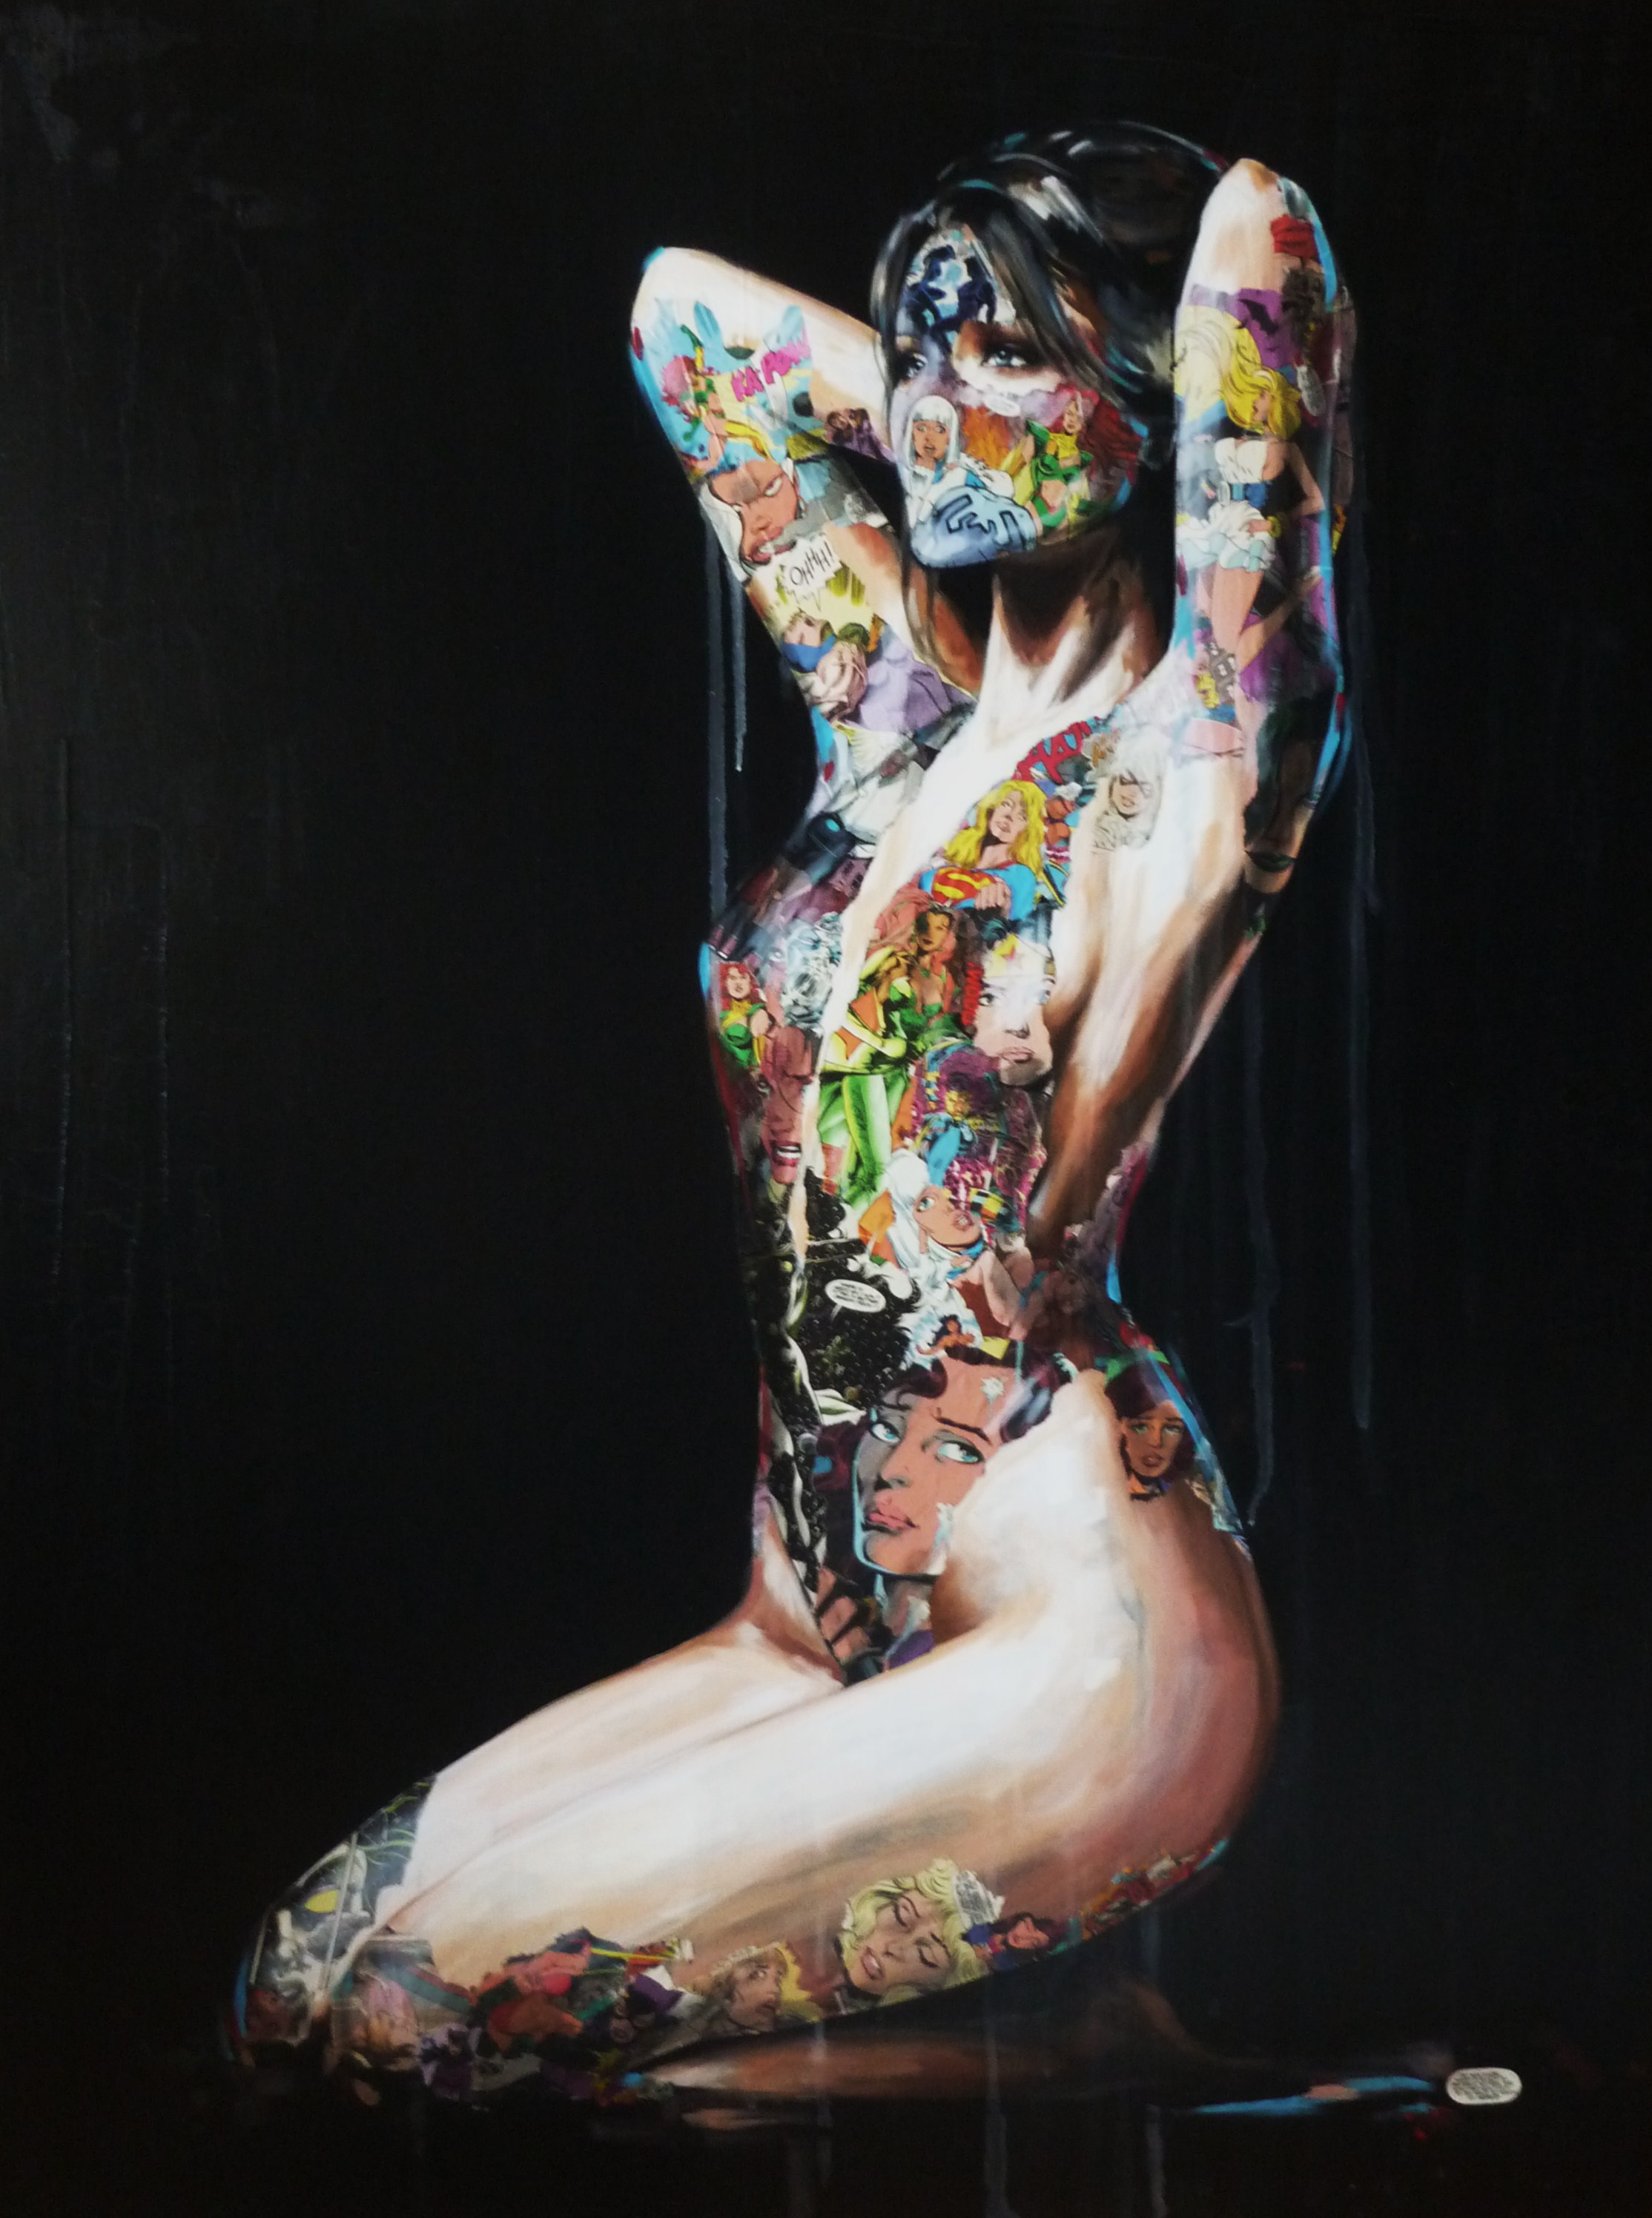 "Sandra Chevrier ""Les Cages; Collections of the Broken"" @ REED Projects, Stavanger: La Cage sans vent, ni soleil. 48X36, 2013..JPG"